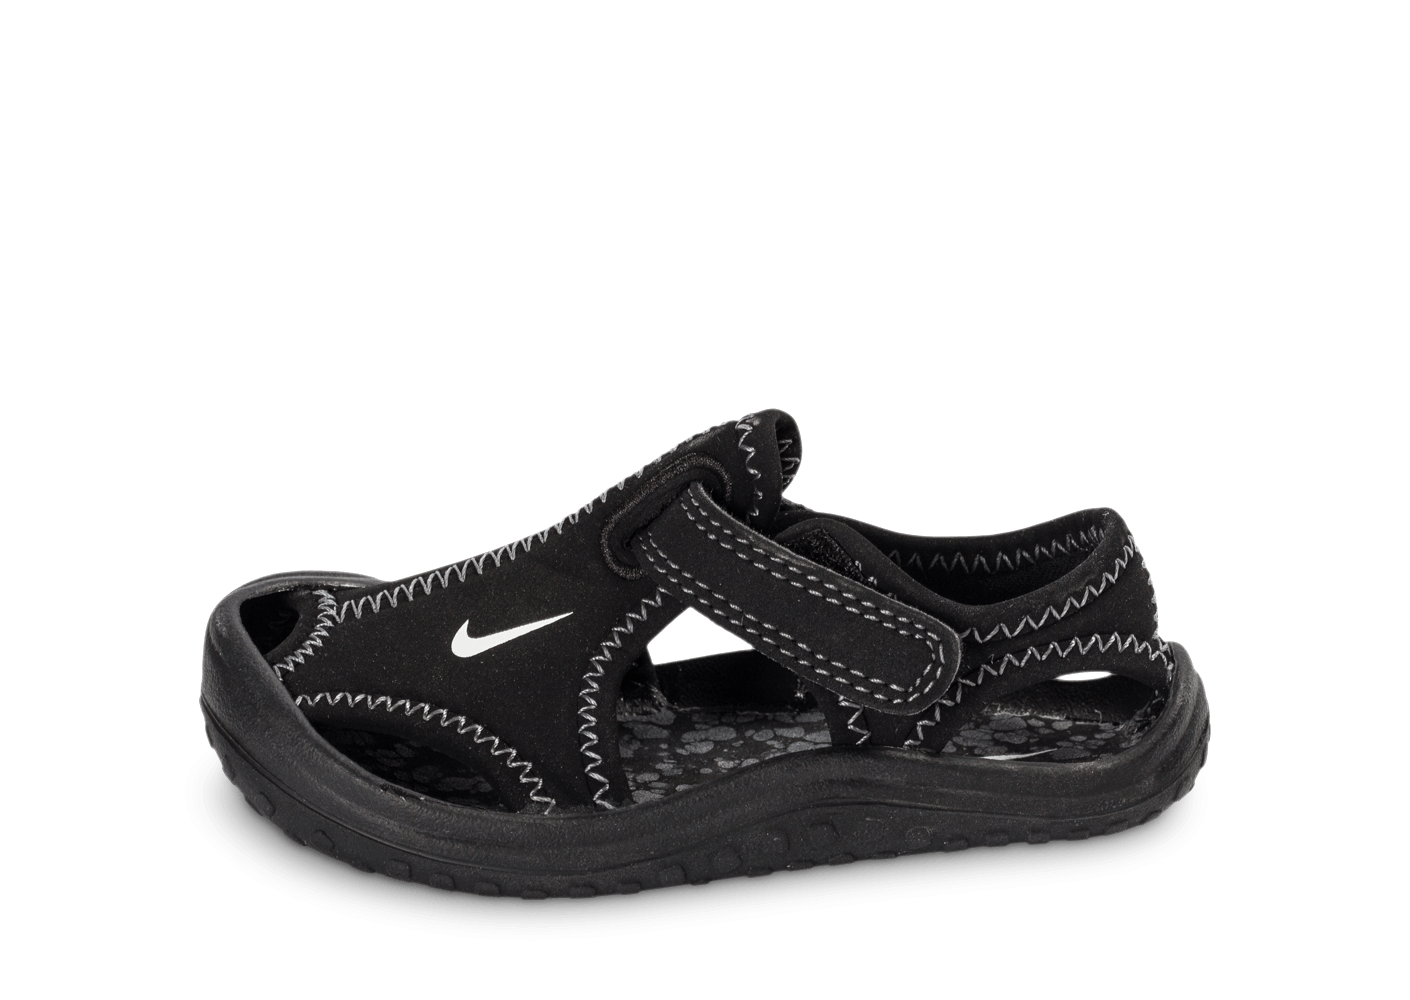 brand new c61a8 9f5ad Nike Sunray Protect noire - Chaussures Chaussures - Chausport